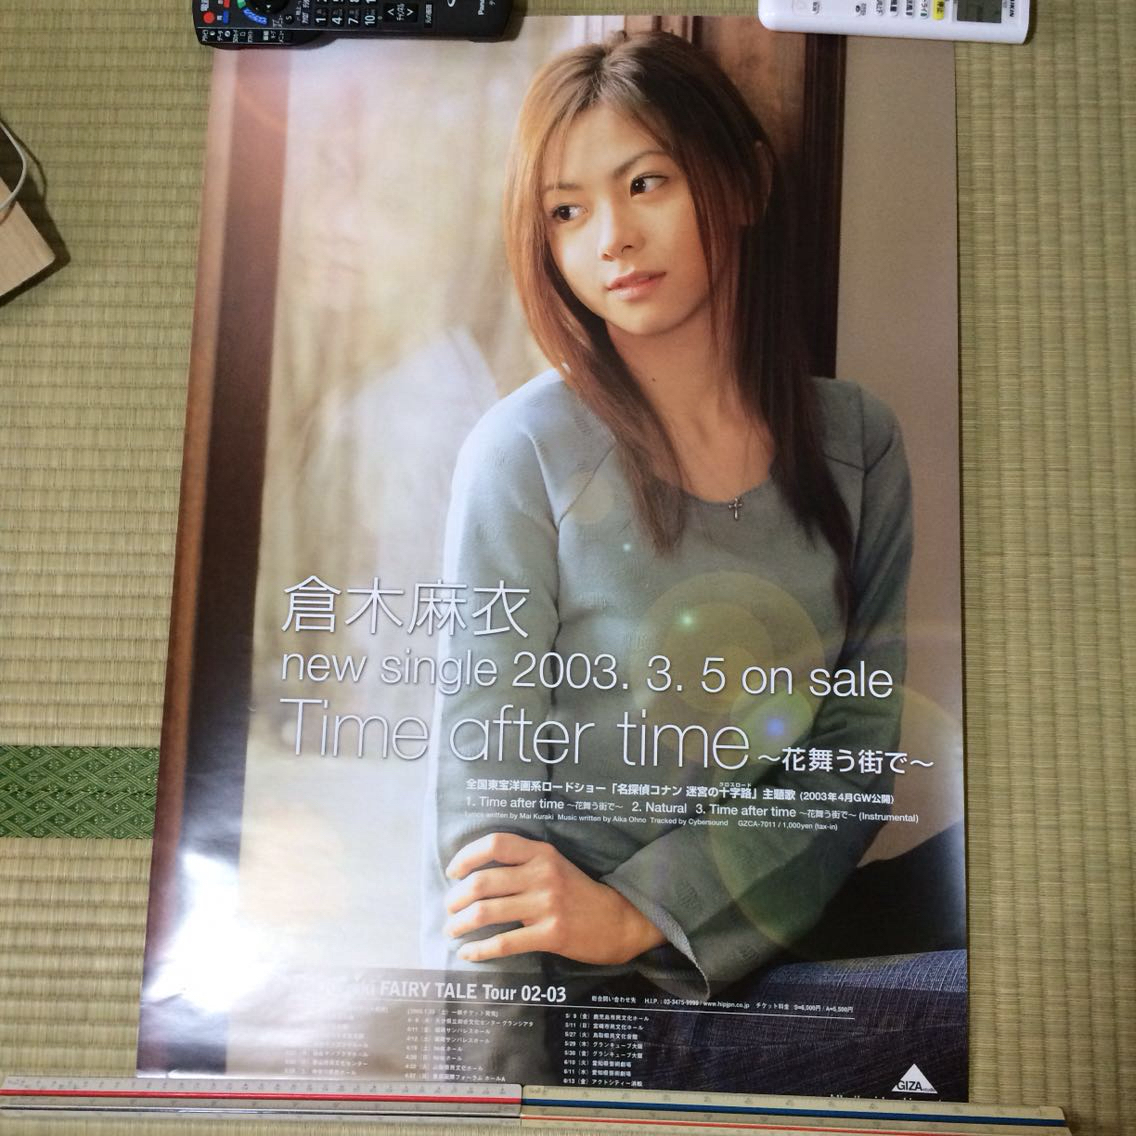 time after time 国内用★B2ポスター★倉木麻衣★シングル★名探偵コナン 花舞う街で 非売品 パック店頭販促用